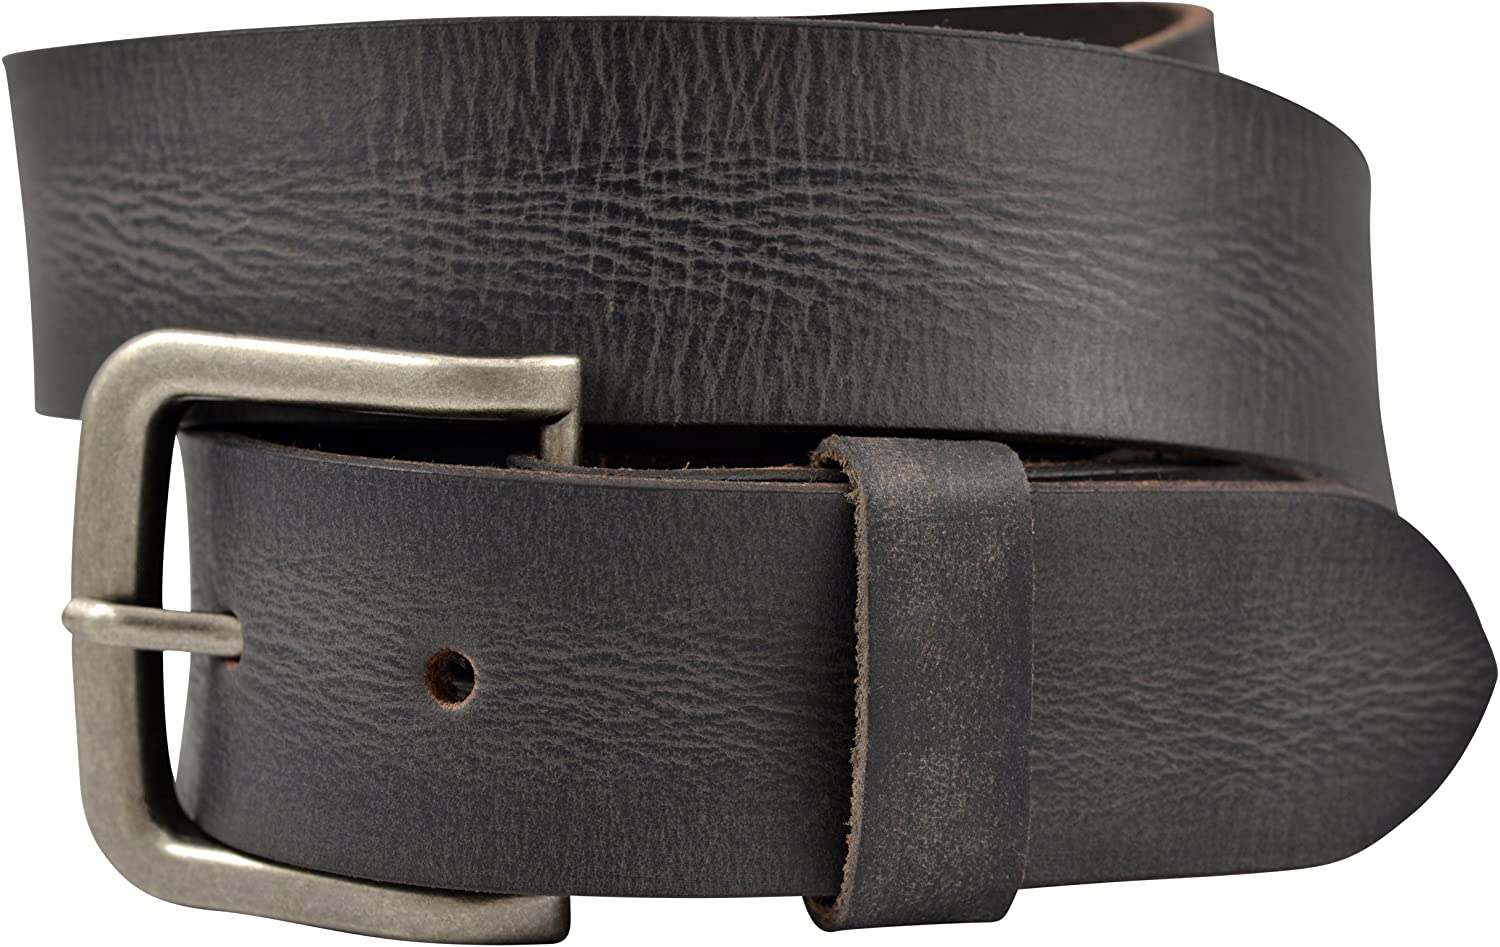 Black Vintage Full Grain Buffalo Solid Leather Belt TBS4010-001